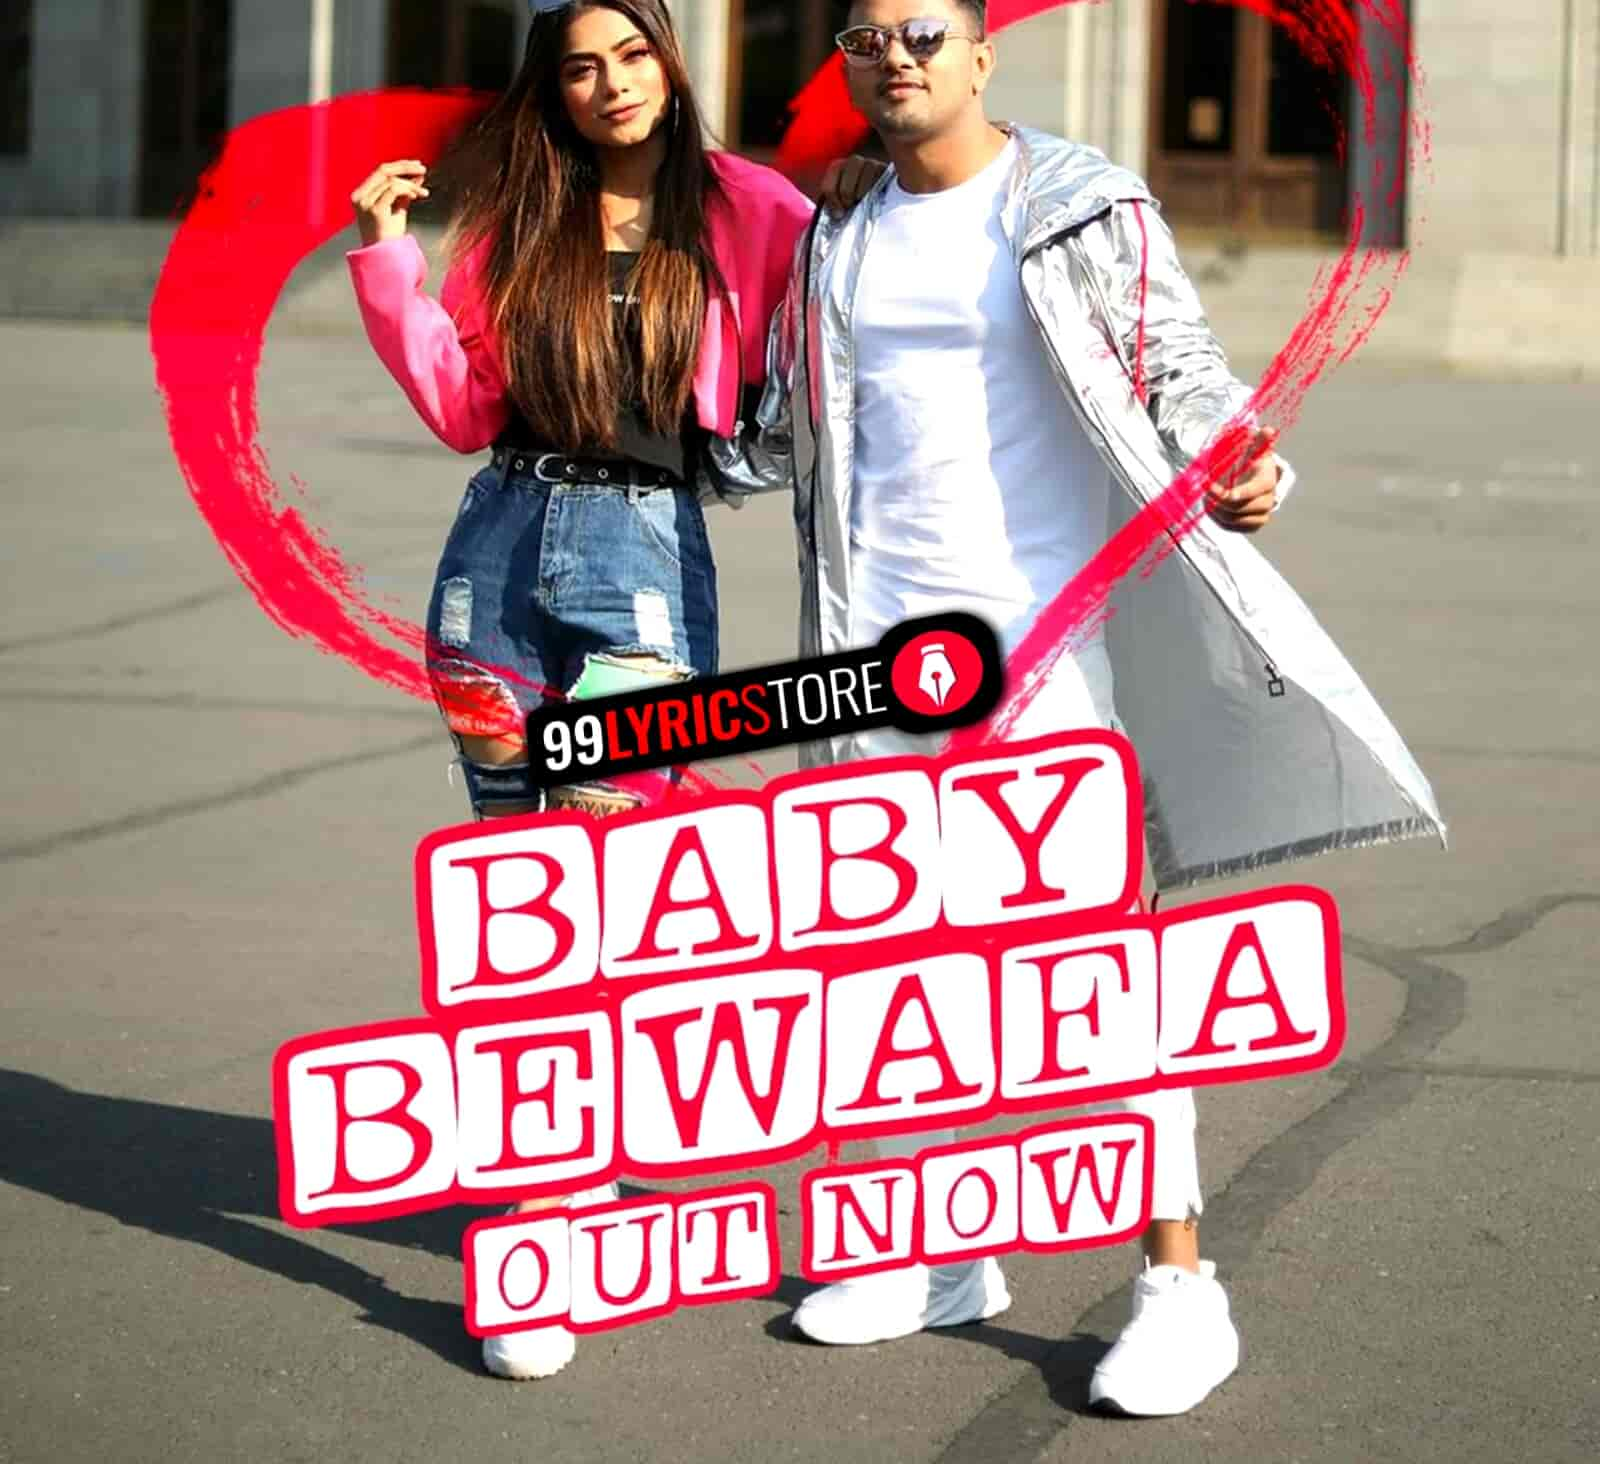 Baby Bewafa Lyrics Images Awez Darbar and Nagma Mirajkar